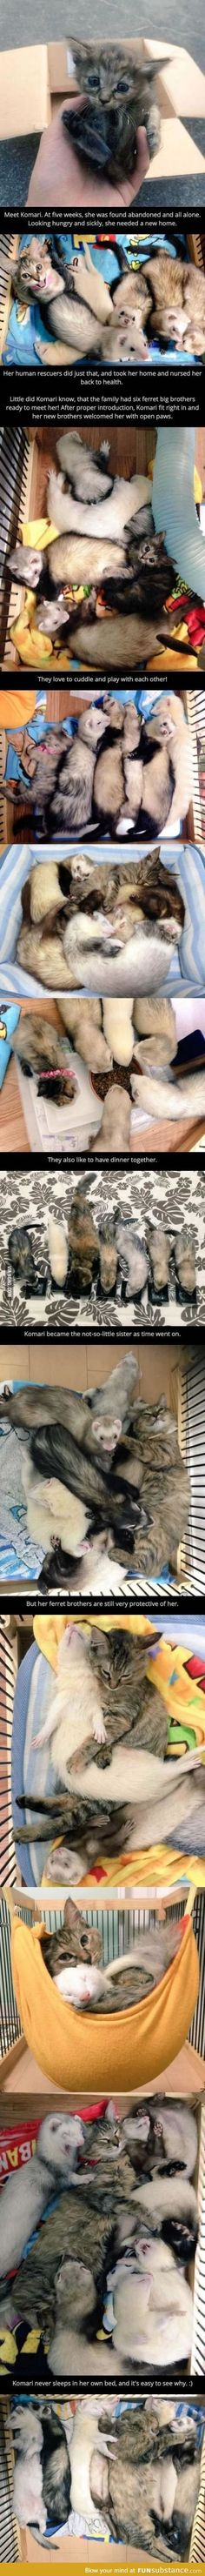 Cute kitten becomes part of a family of ferrets!